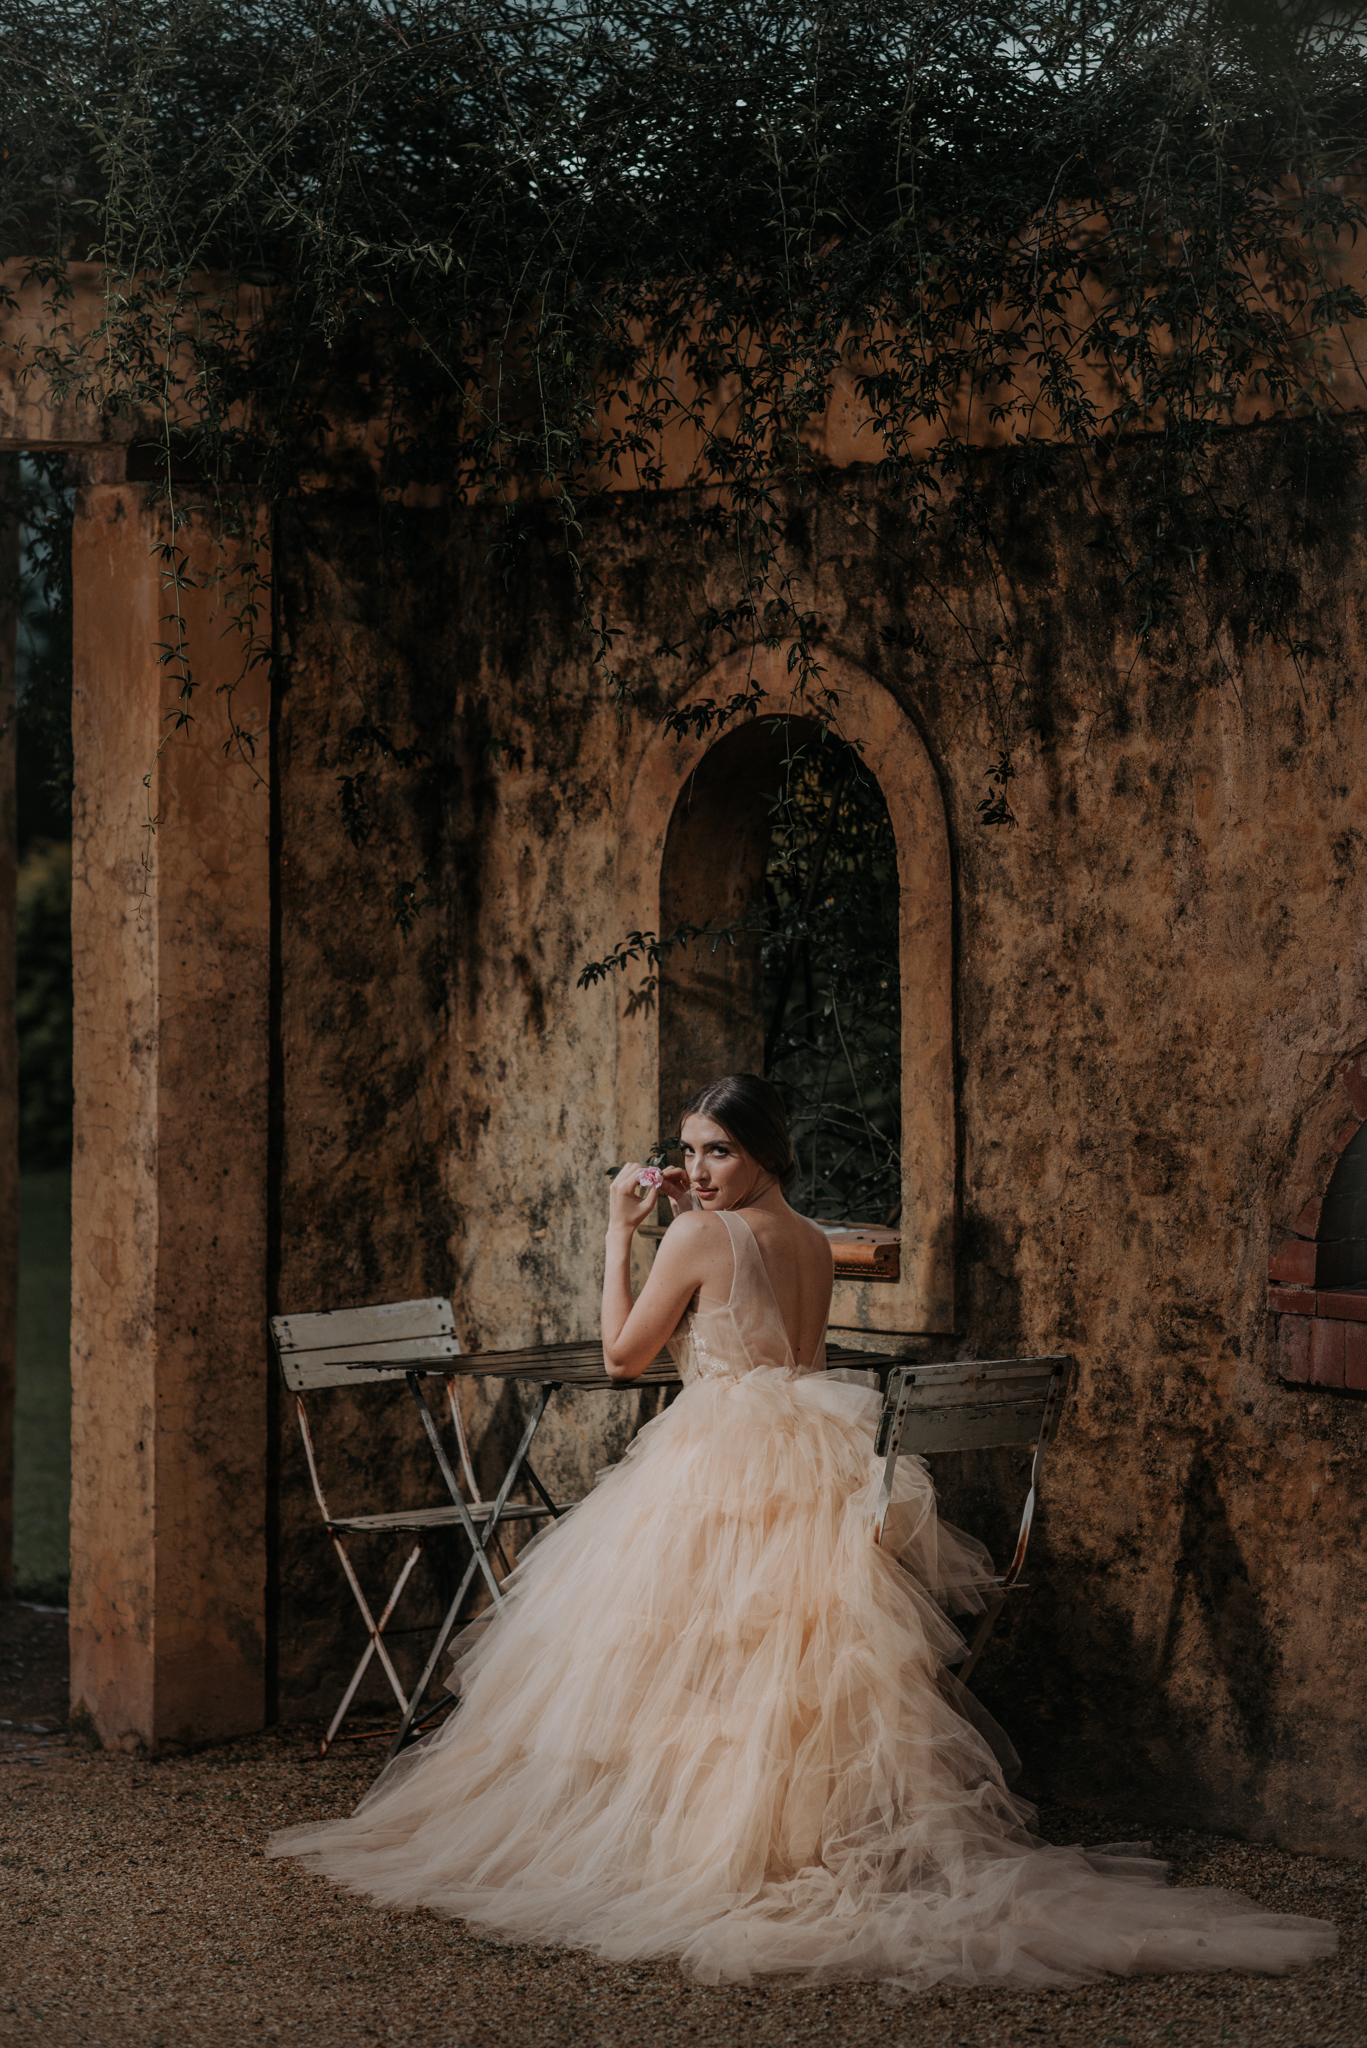 Lovelenscapes Photography X Ulyana Aster Bridal • Les Deux Belettes • Leigh McCoy • Bloodwood Botanica • Alena Iano • Alisa Rudnev • Demi Groot • Jessie Lockley • Maddison Ruby • 155.jpg